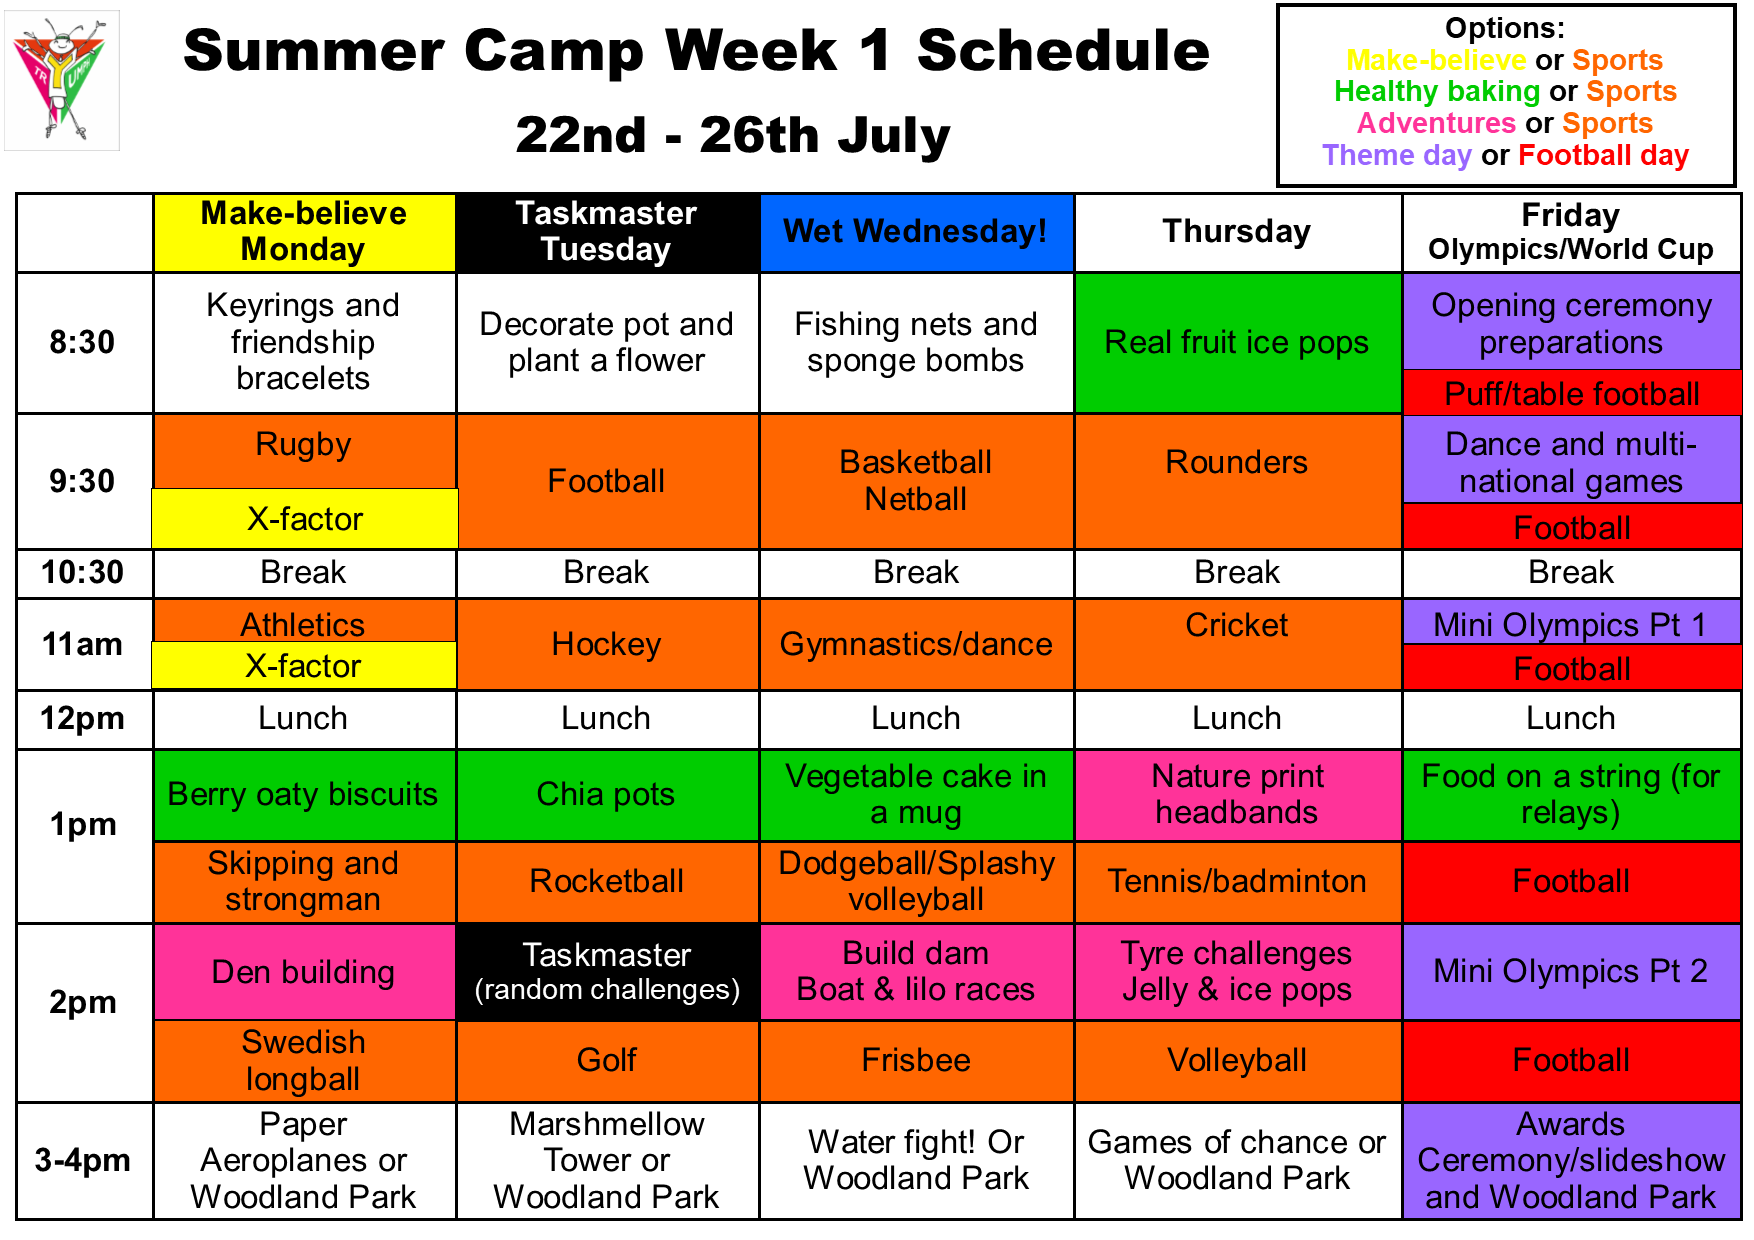 Summer camp week 1